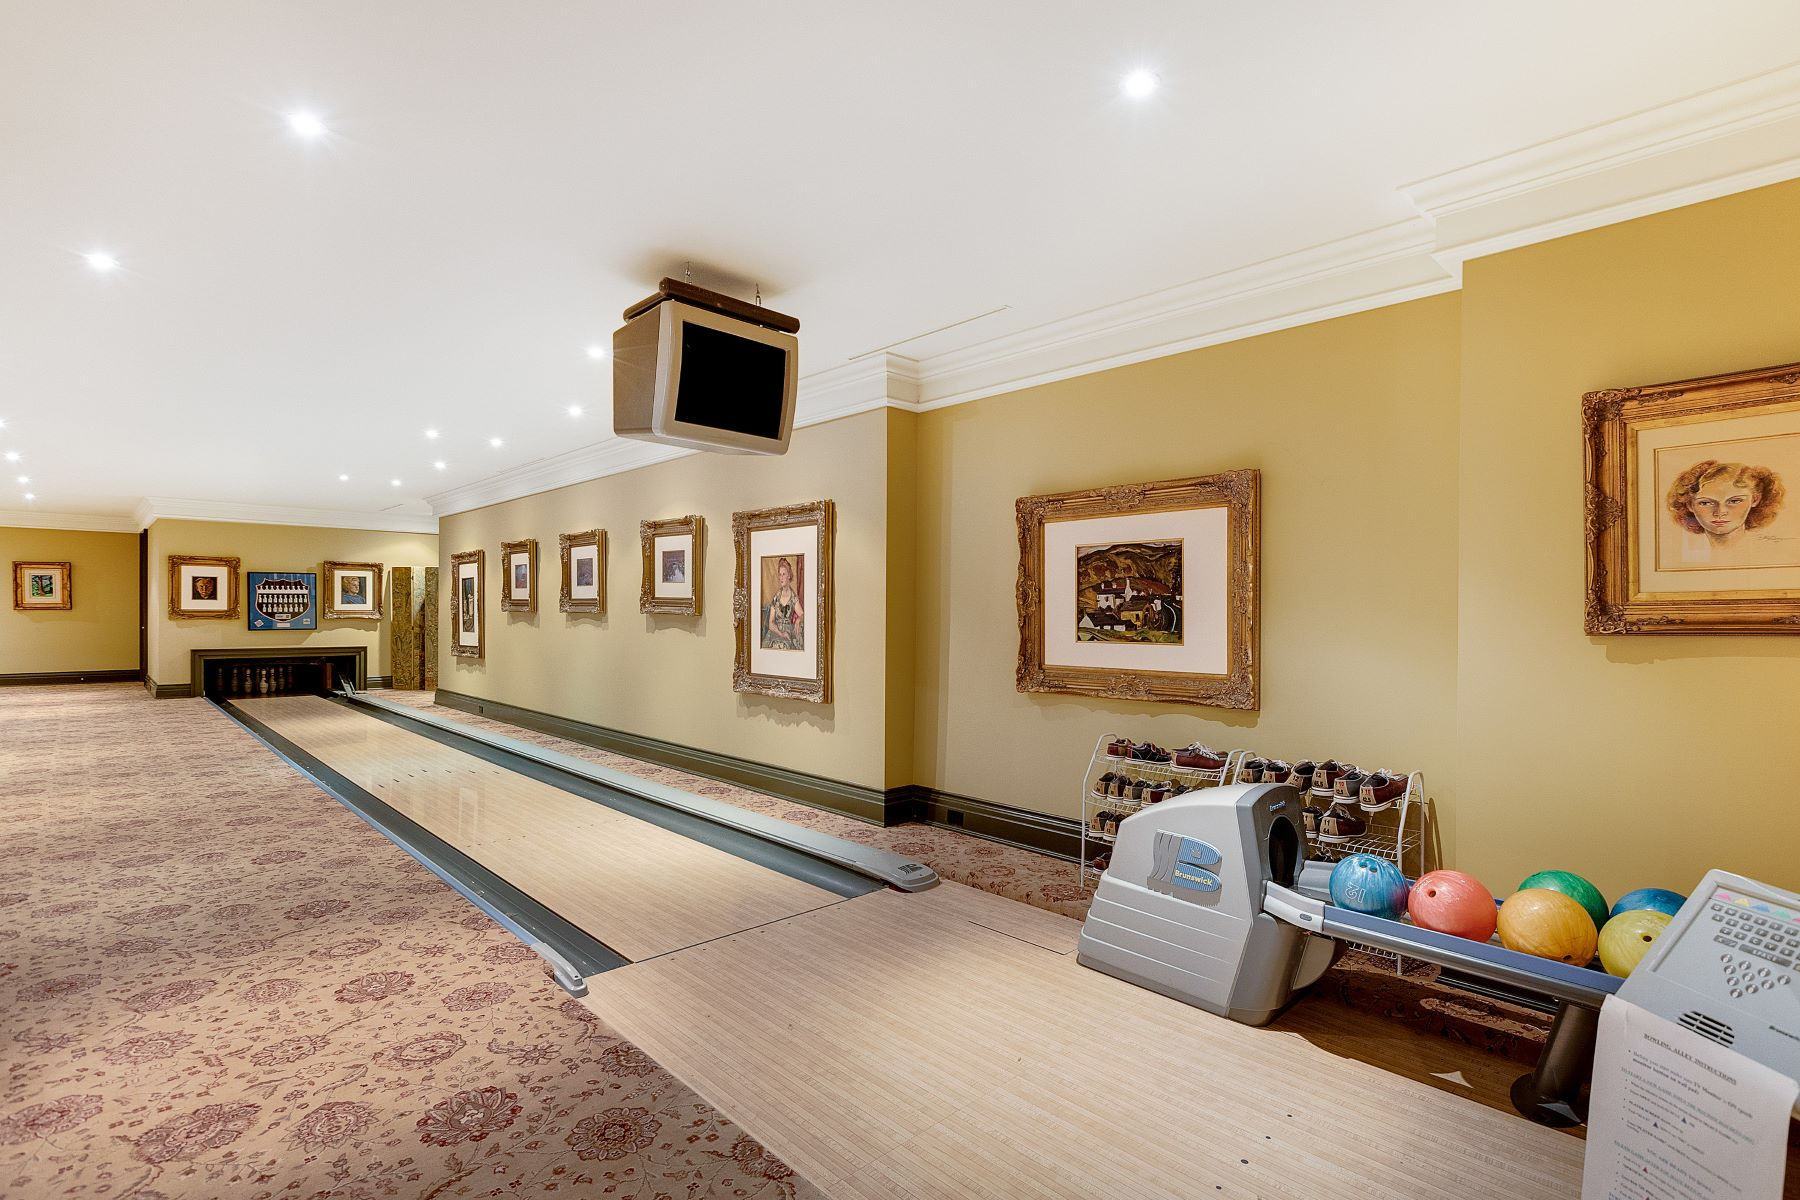 Additional photo for property listing at Chelster Hall 1150 Lakeshore Rd E 奥克维尔, 安大略省 L6L 1L2 加拿大